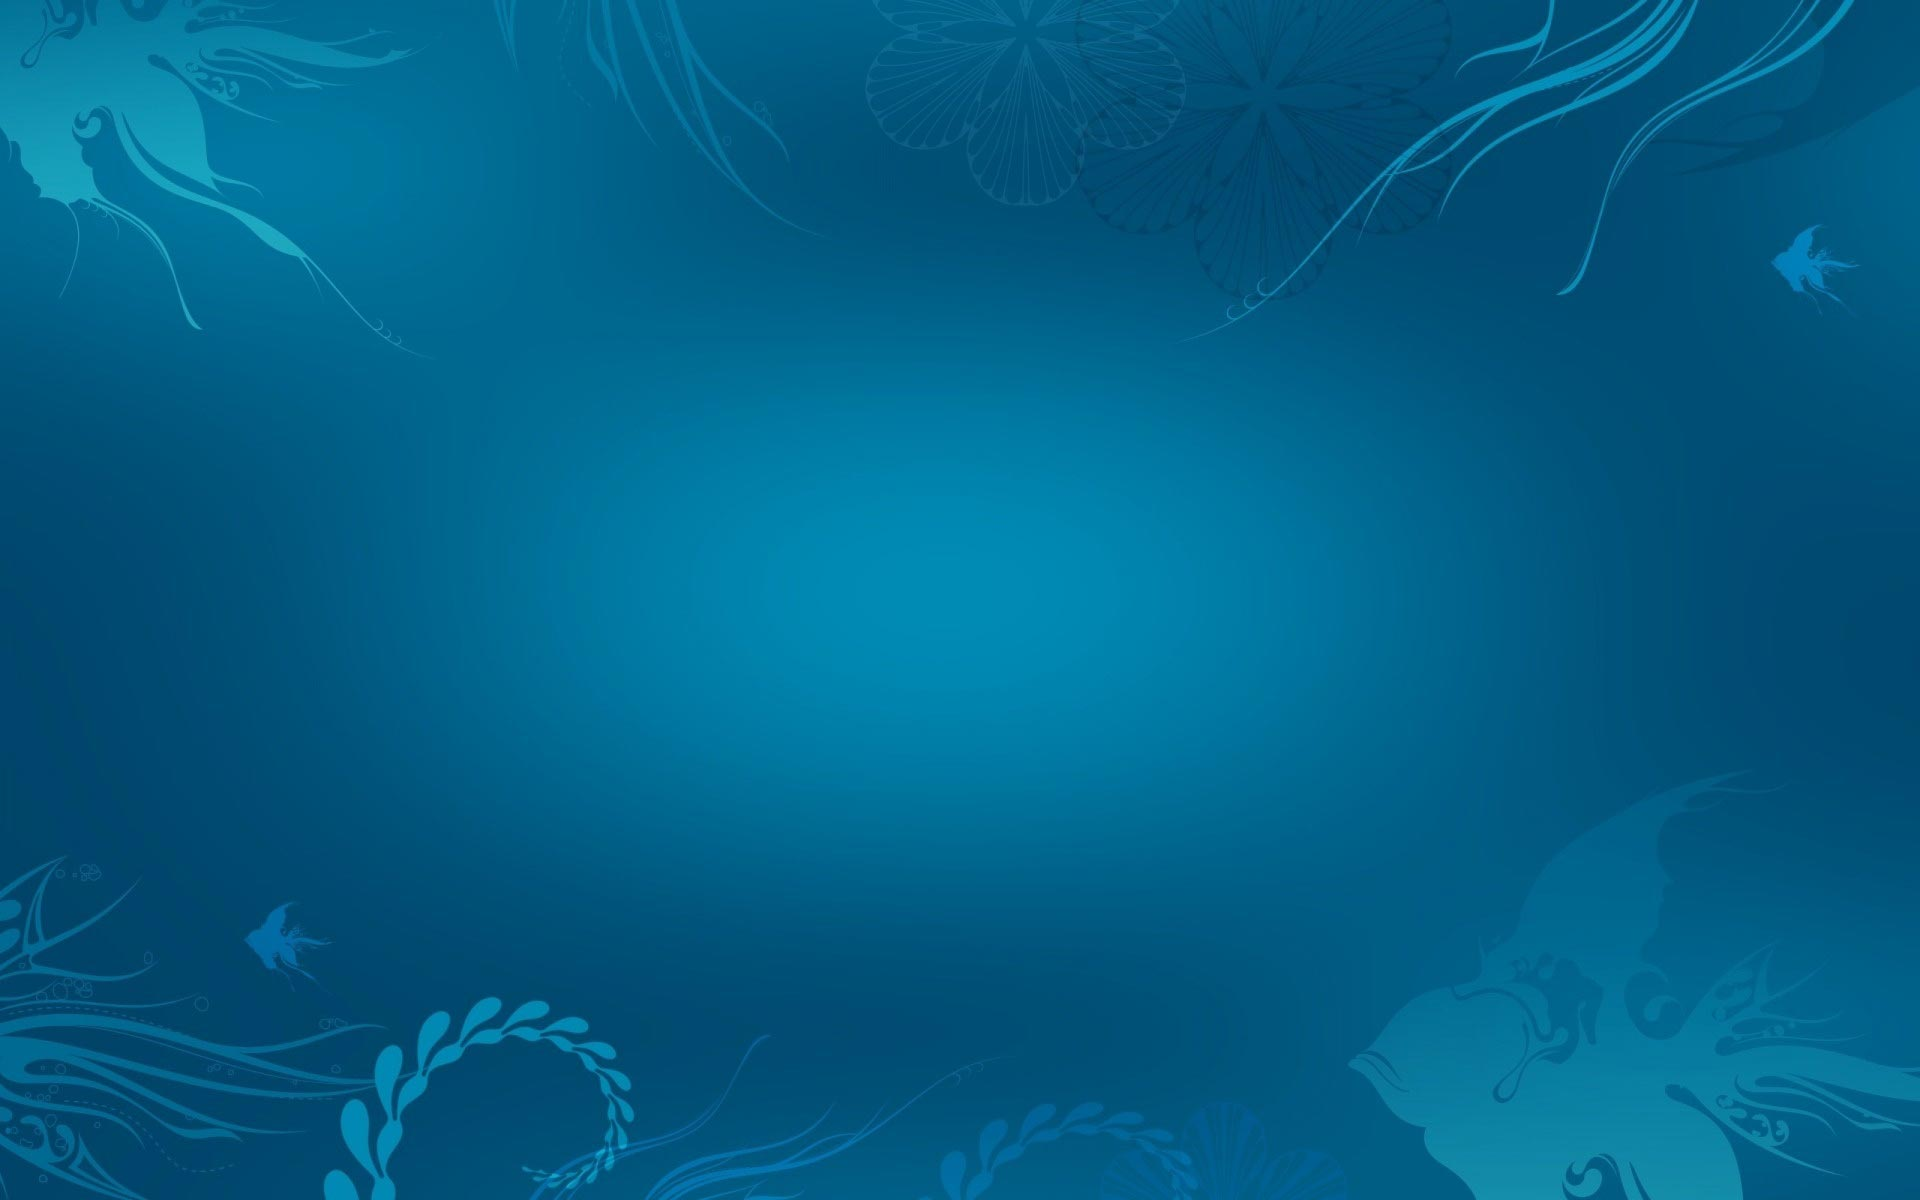 Nice blue background Desktop hd Wallpaper and make this wallpaper for 1920x1200